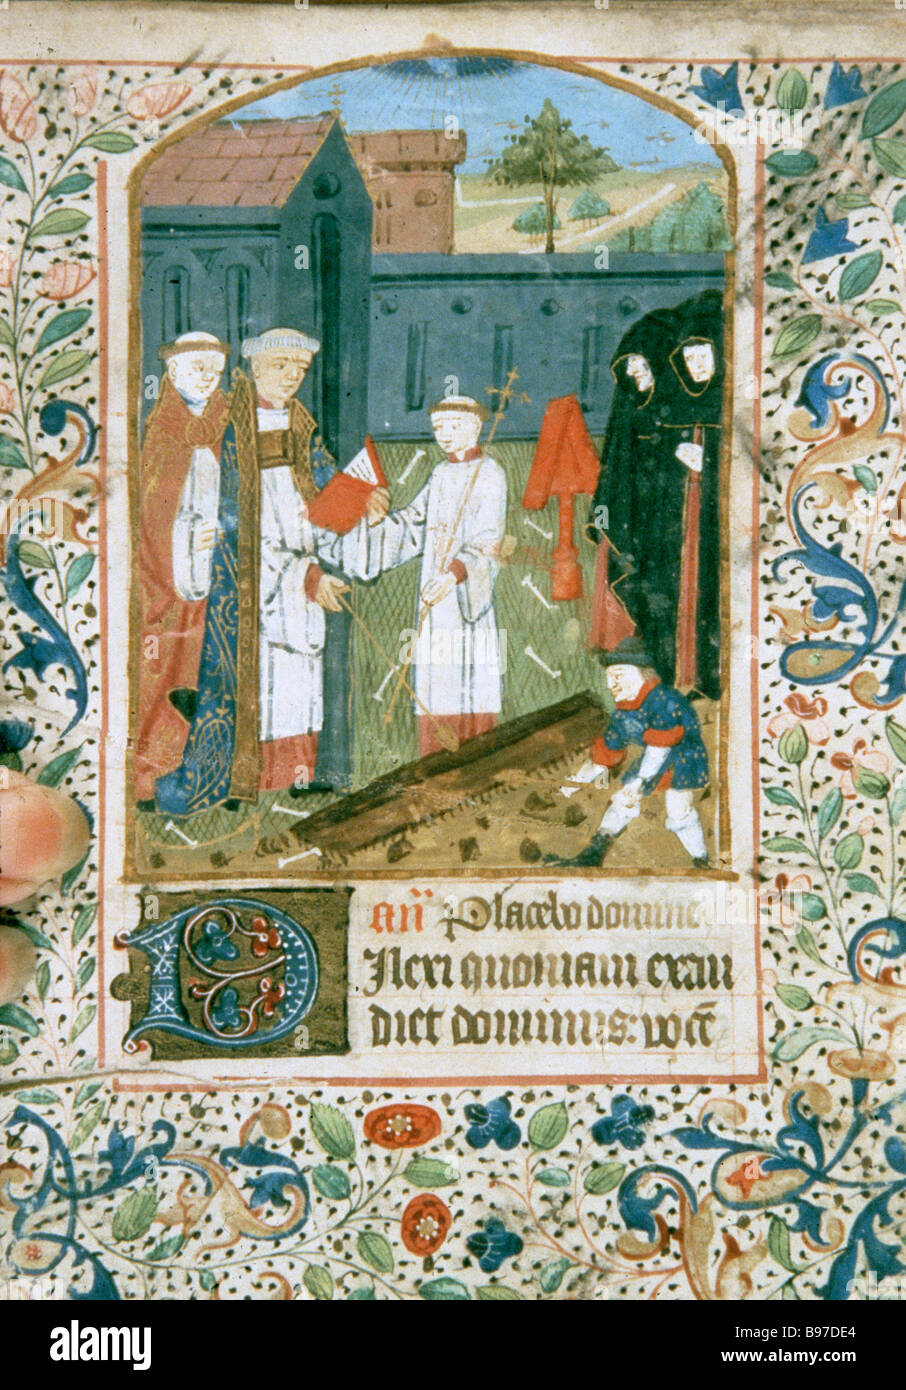 Burial, 14th century Book of Hours, South African Library, Capetown - Stock Image